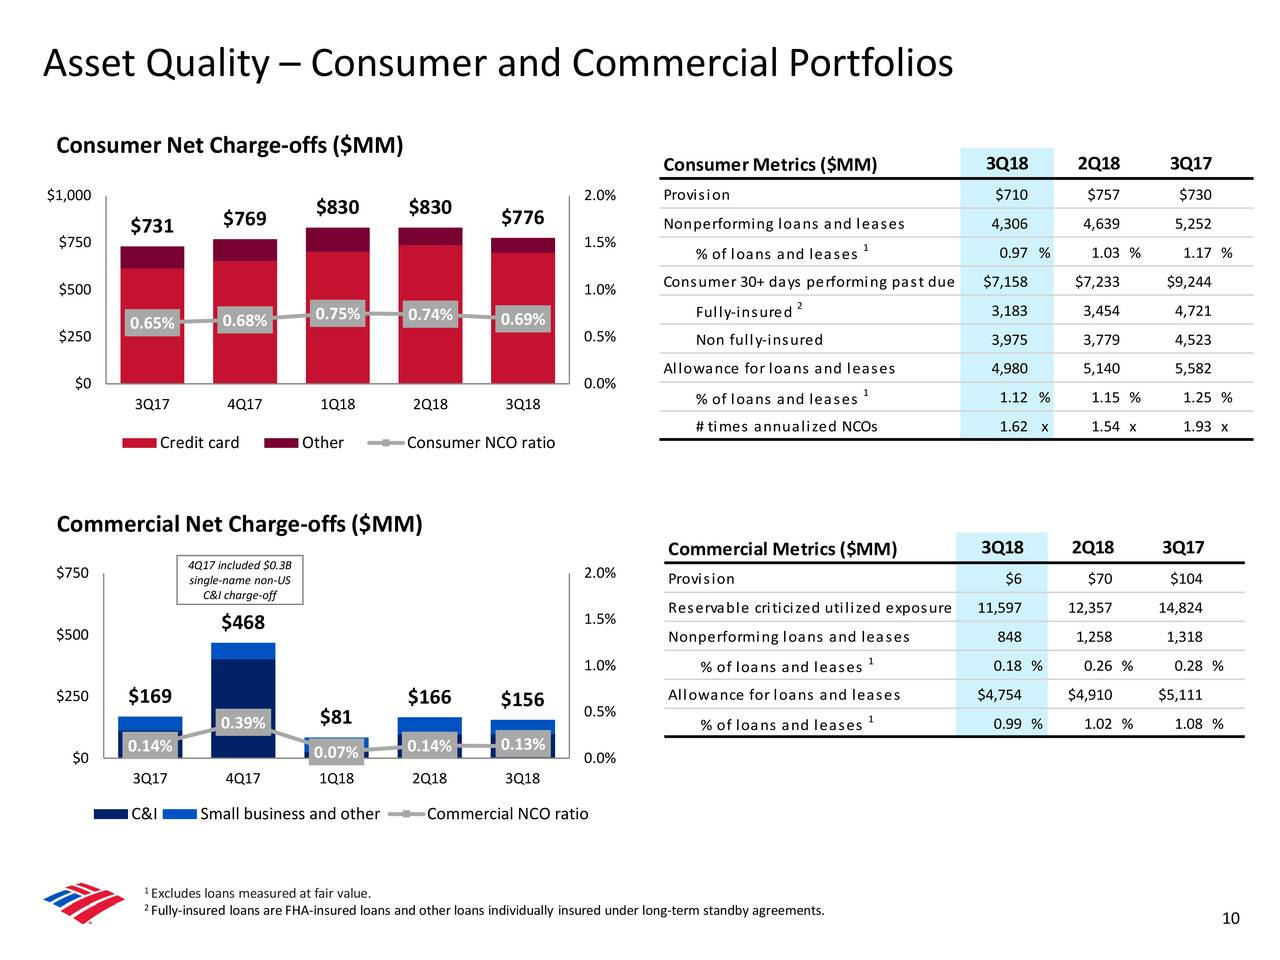 Bank Of America Corporation 2018 Q3